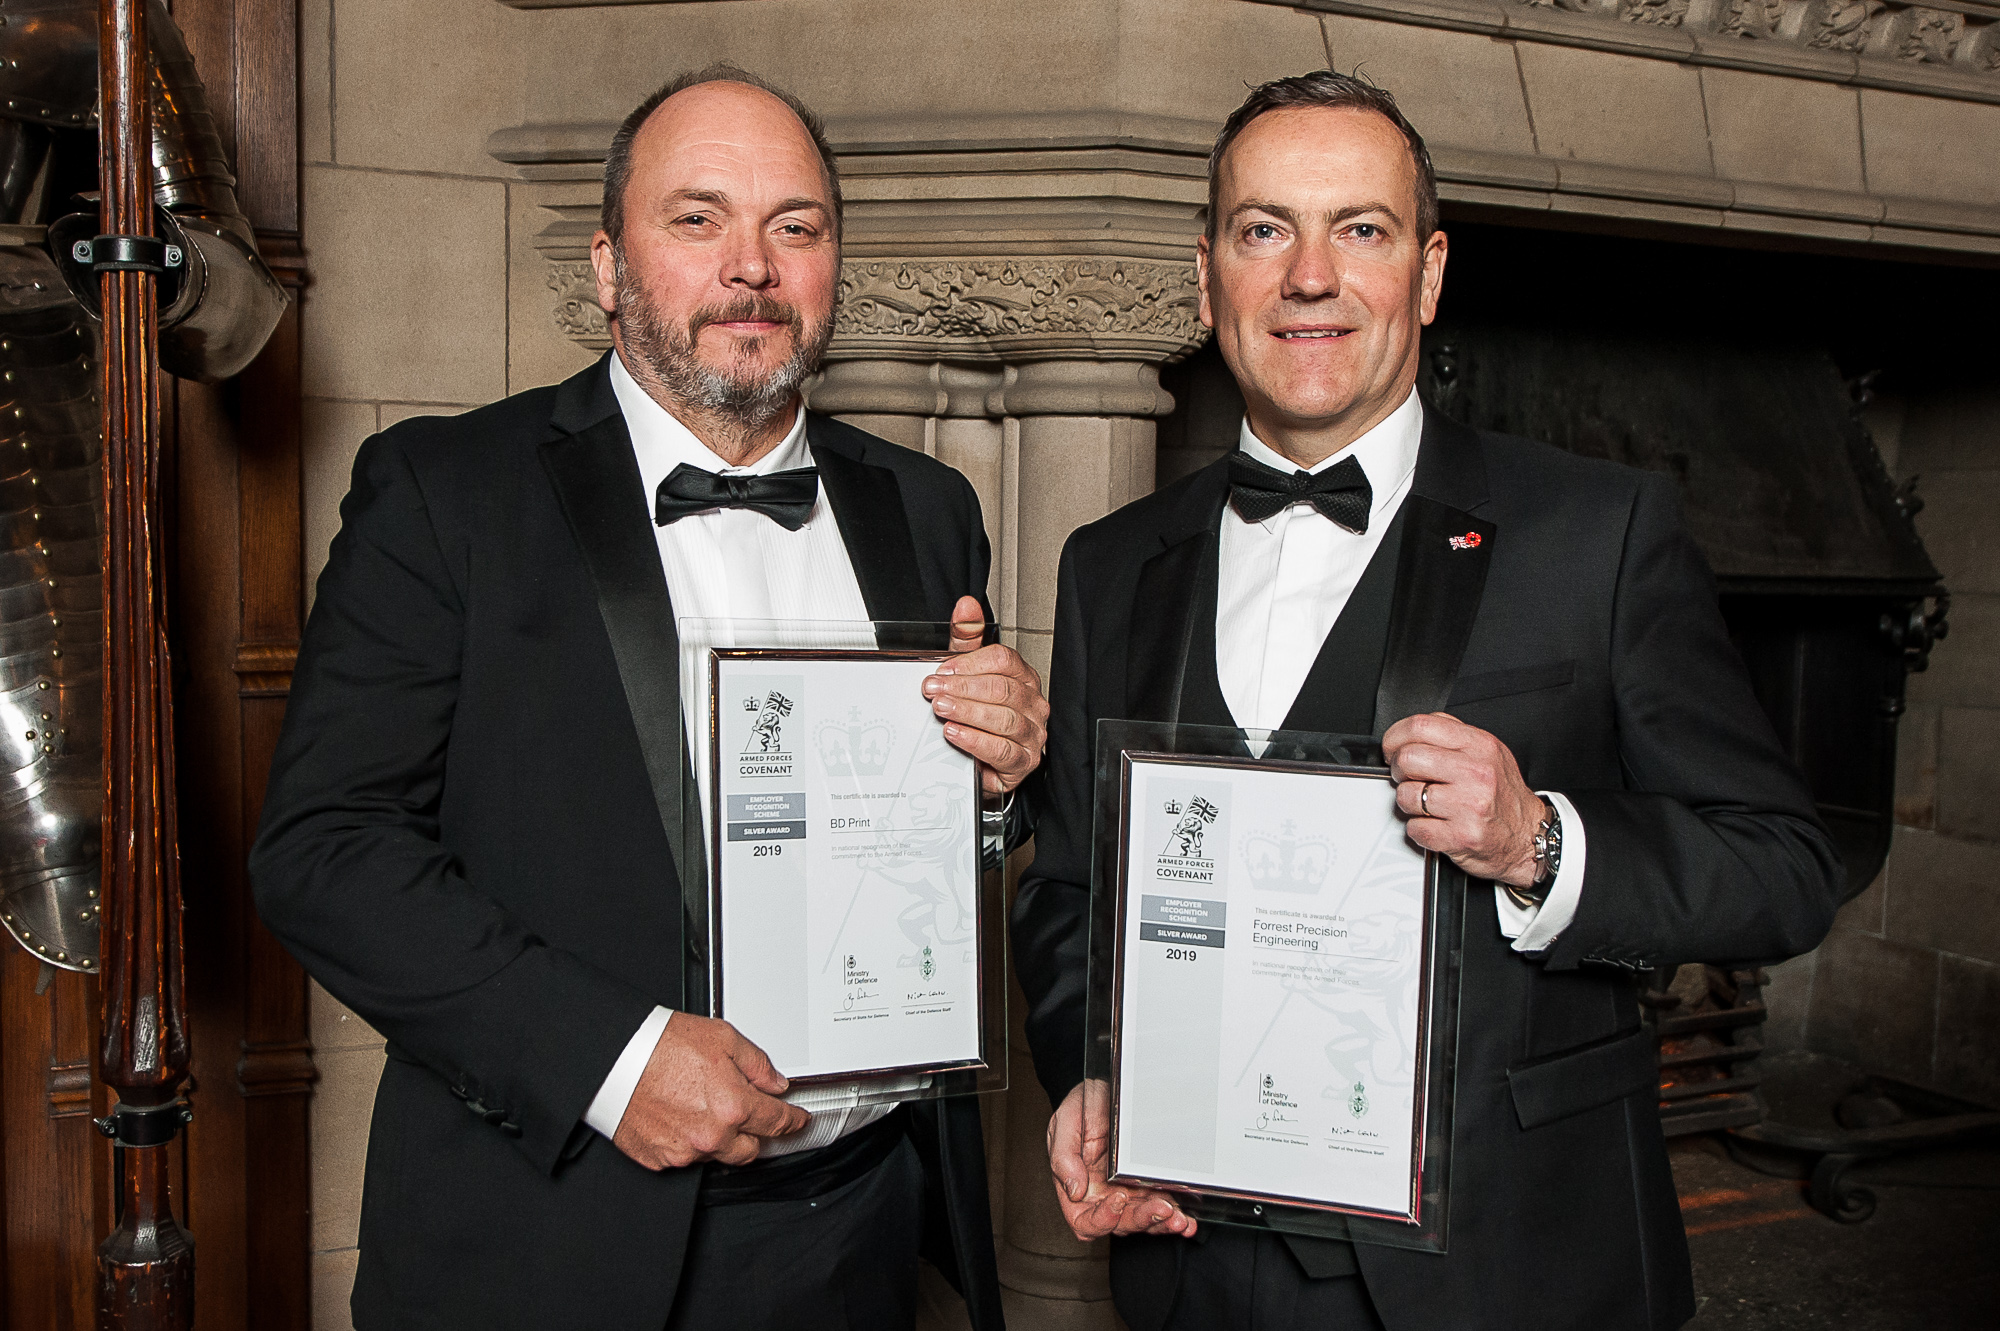 John Johnstone of BD Print and Scott Forrest of Forrest Precision Engineering hold their Silver ERS awards at a ceremony in 2019